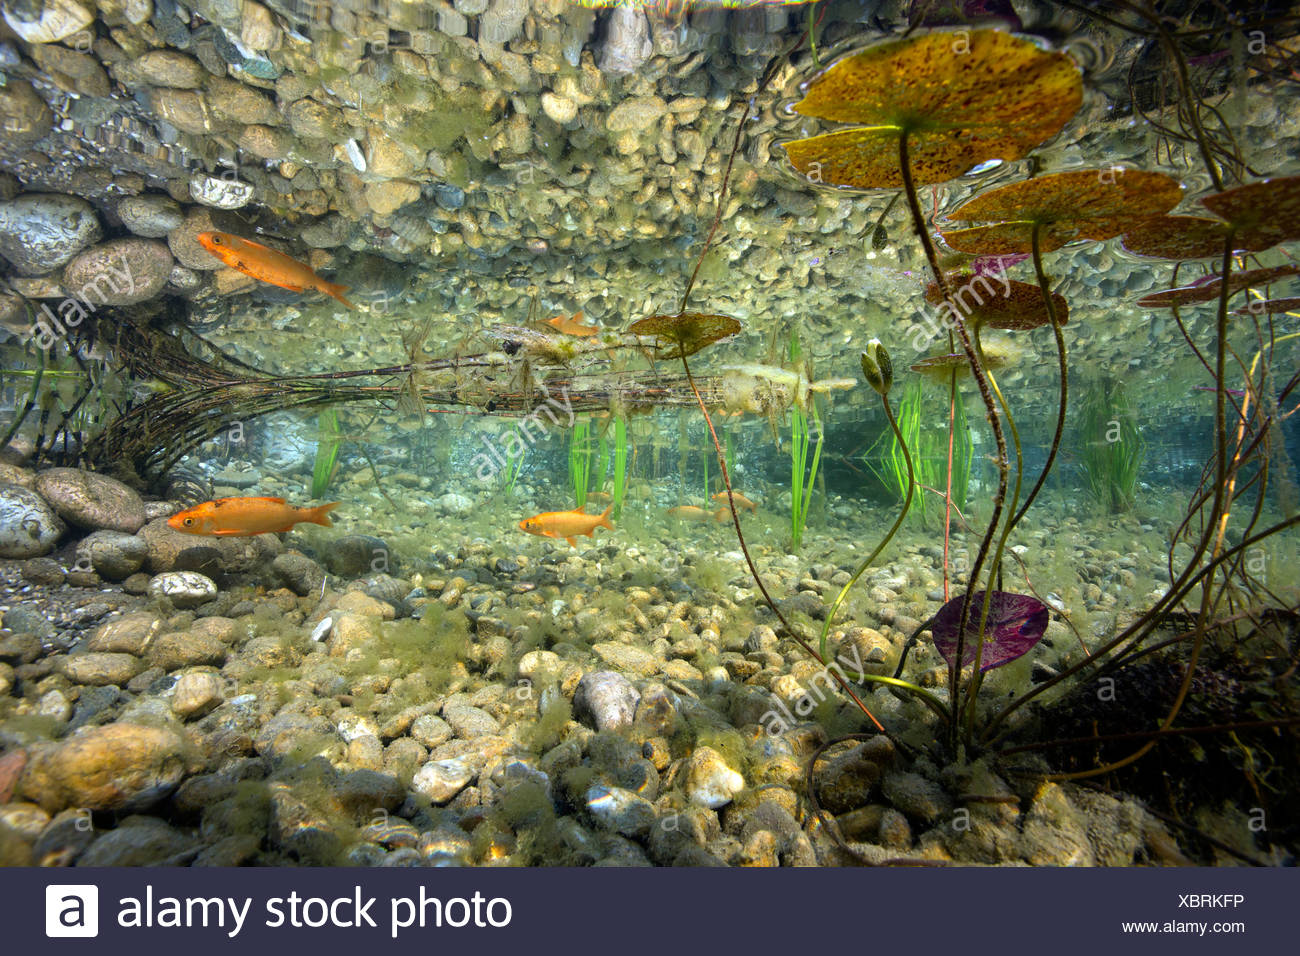 Pond fish rock stockfotos pond fish rock bilder alamy for Goldfische im gartenteich